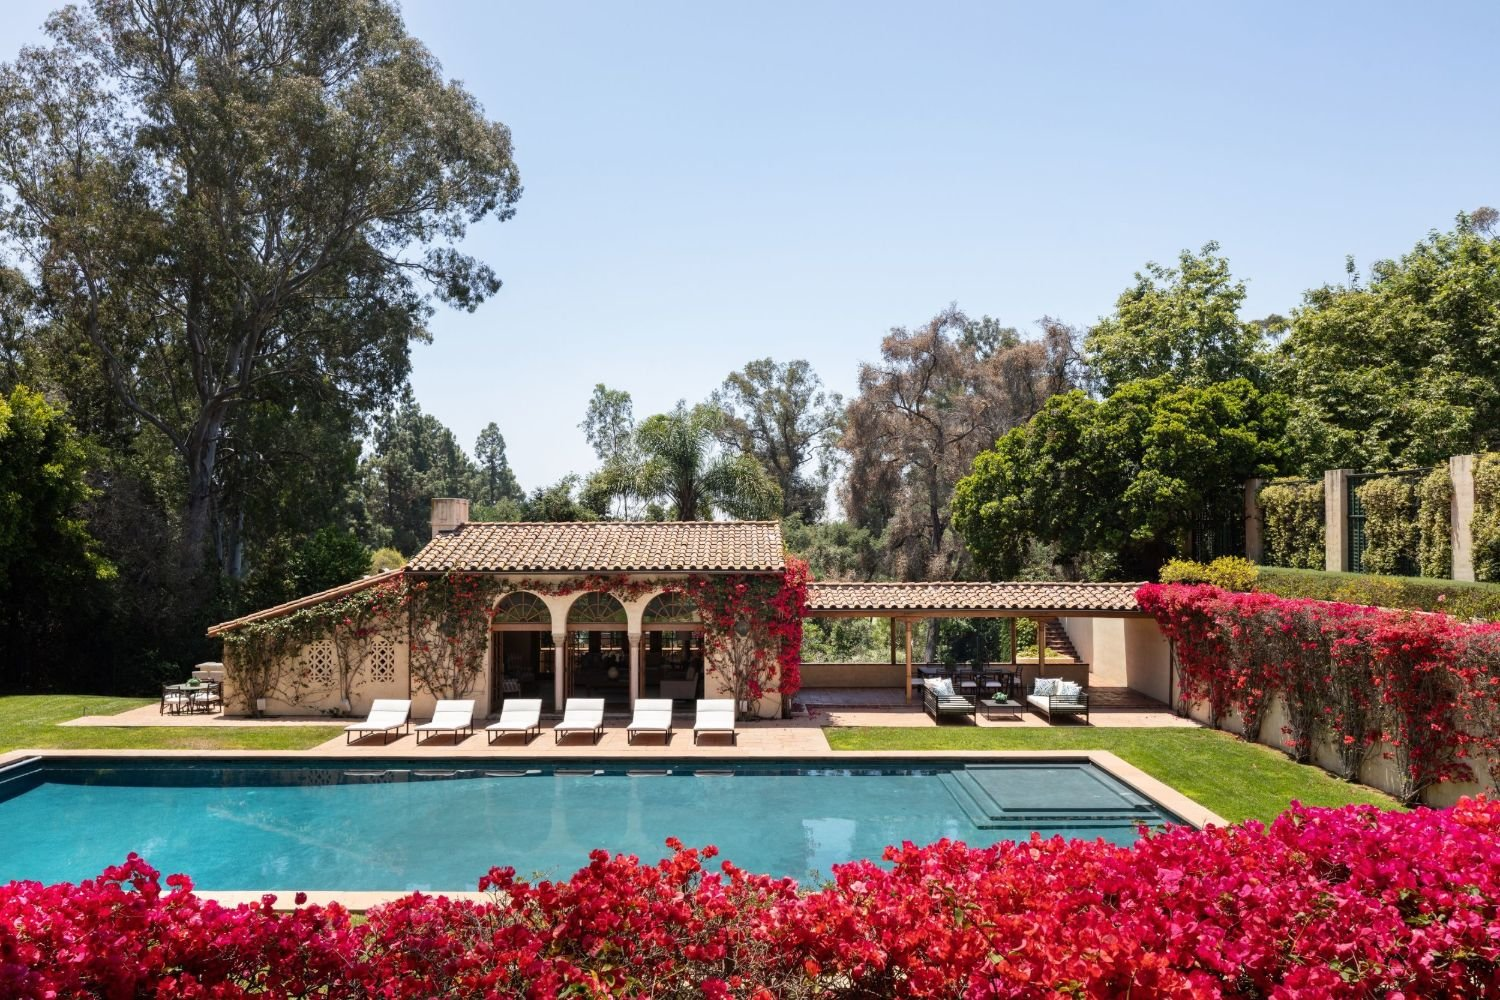 Historic Owlwood Mansion in LA where Sonny & Cher, Tony Curtis, and Marilyn Monroe used to live - Sold